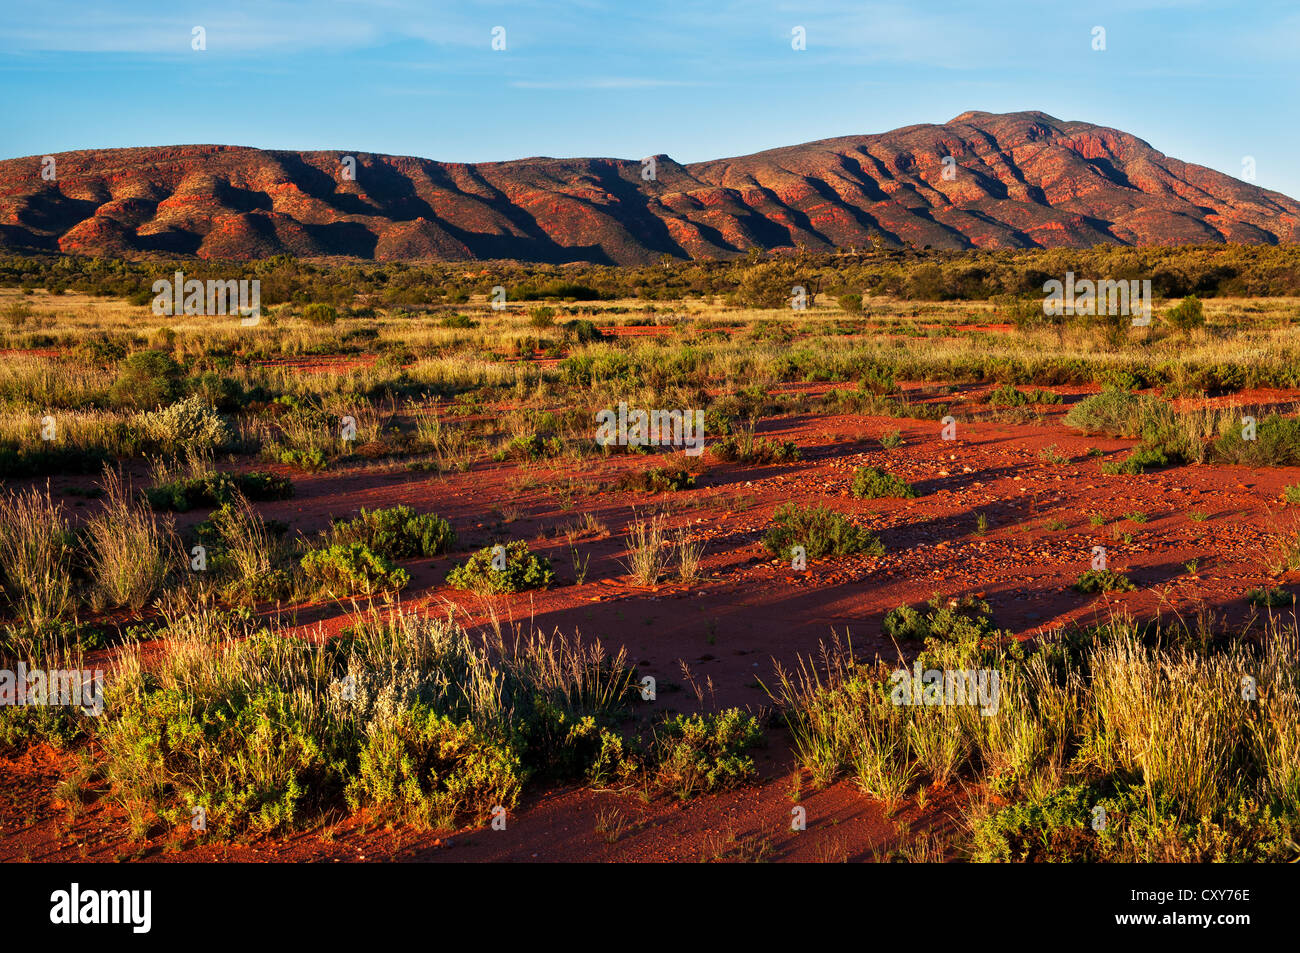 MacDonnell Ranges at the end of the day. - Stock Image